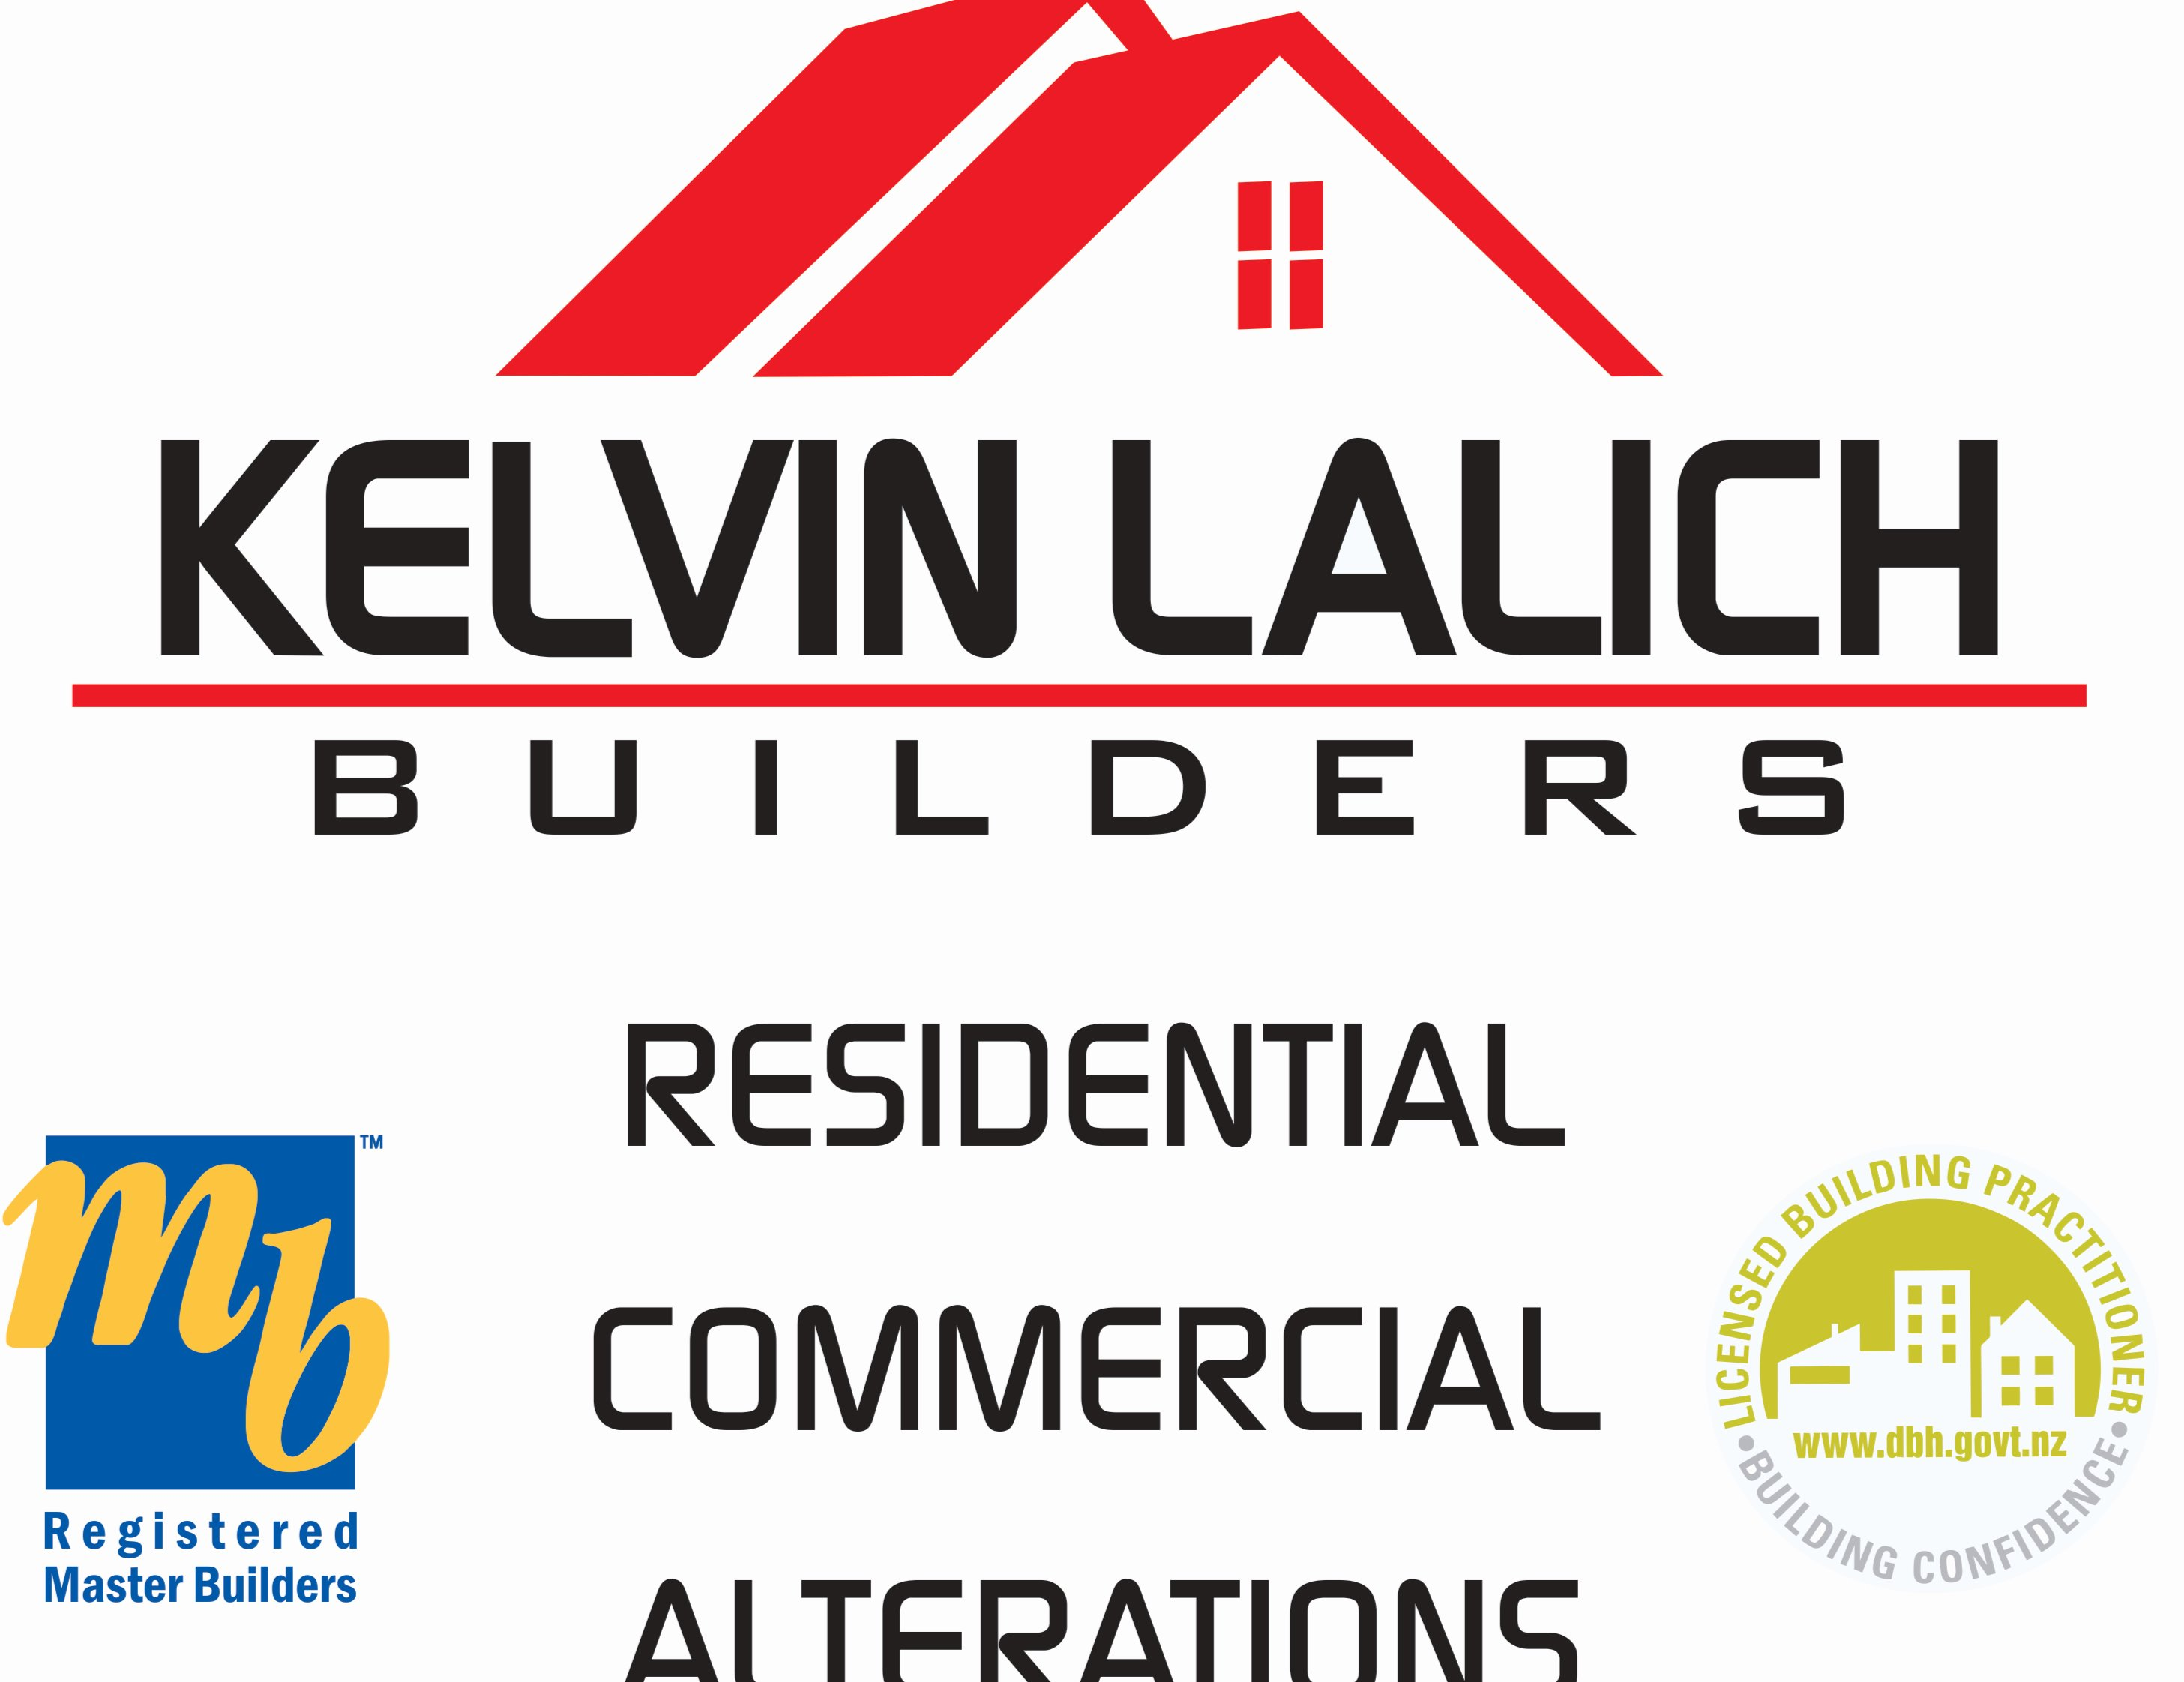 Kelvin Lalich Builders Ltd